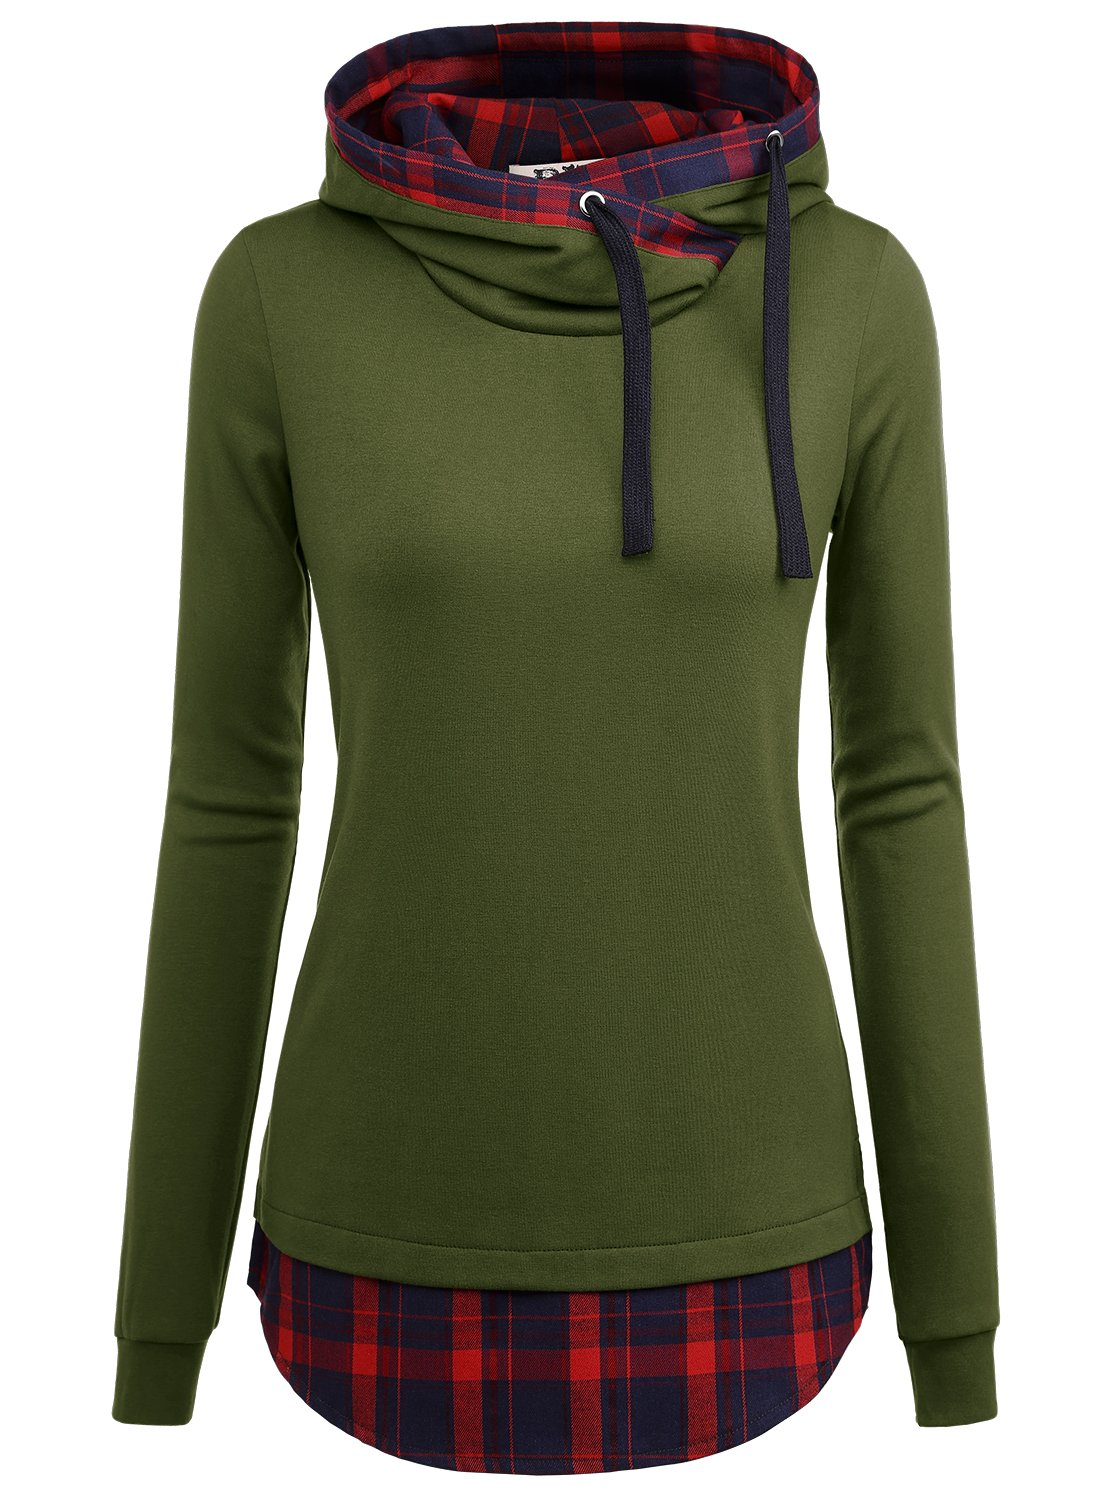 DJT Women's Funnel Neck Check Contrast Pullover Hoodie Top Medium Army Green